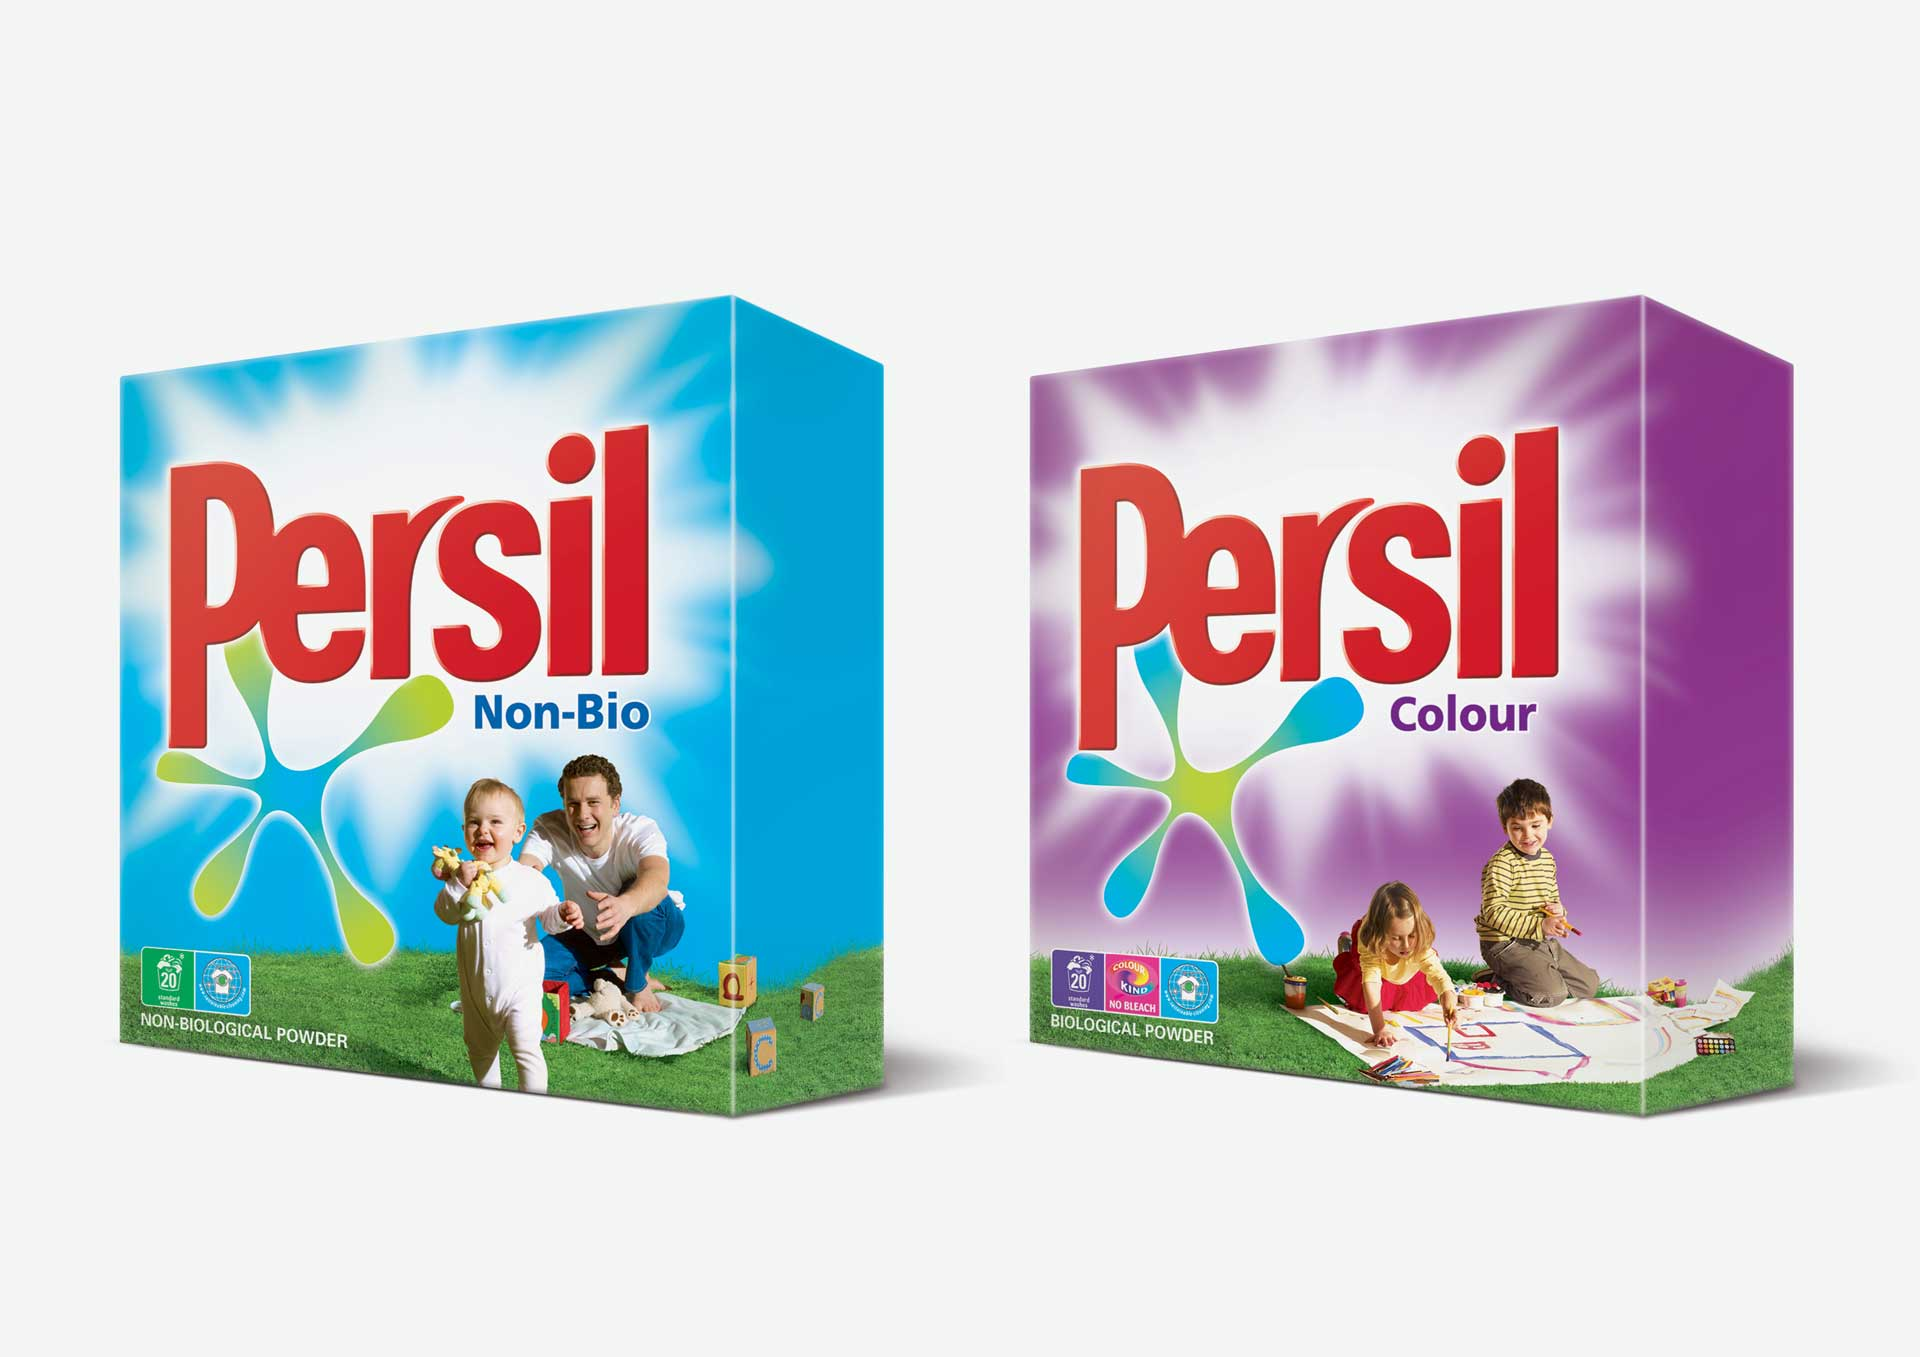 persil-packaging-1